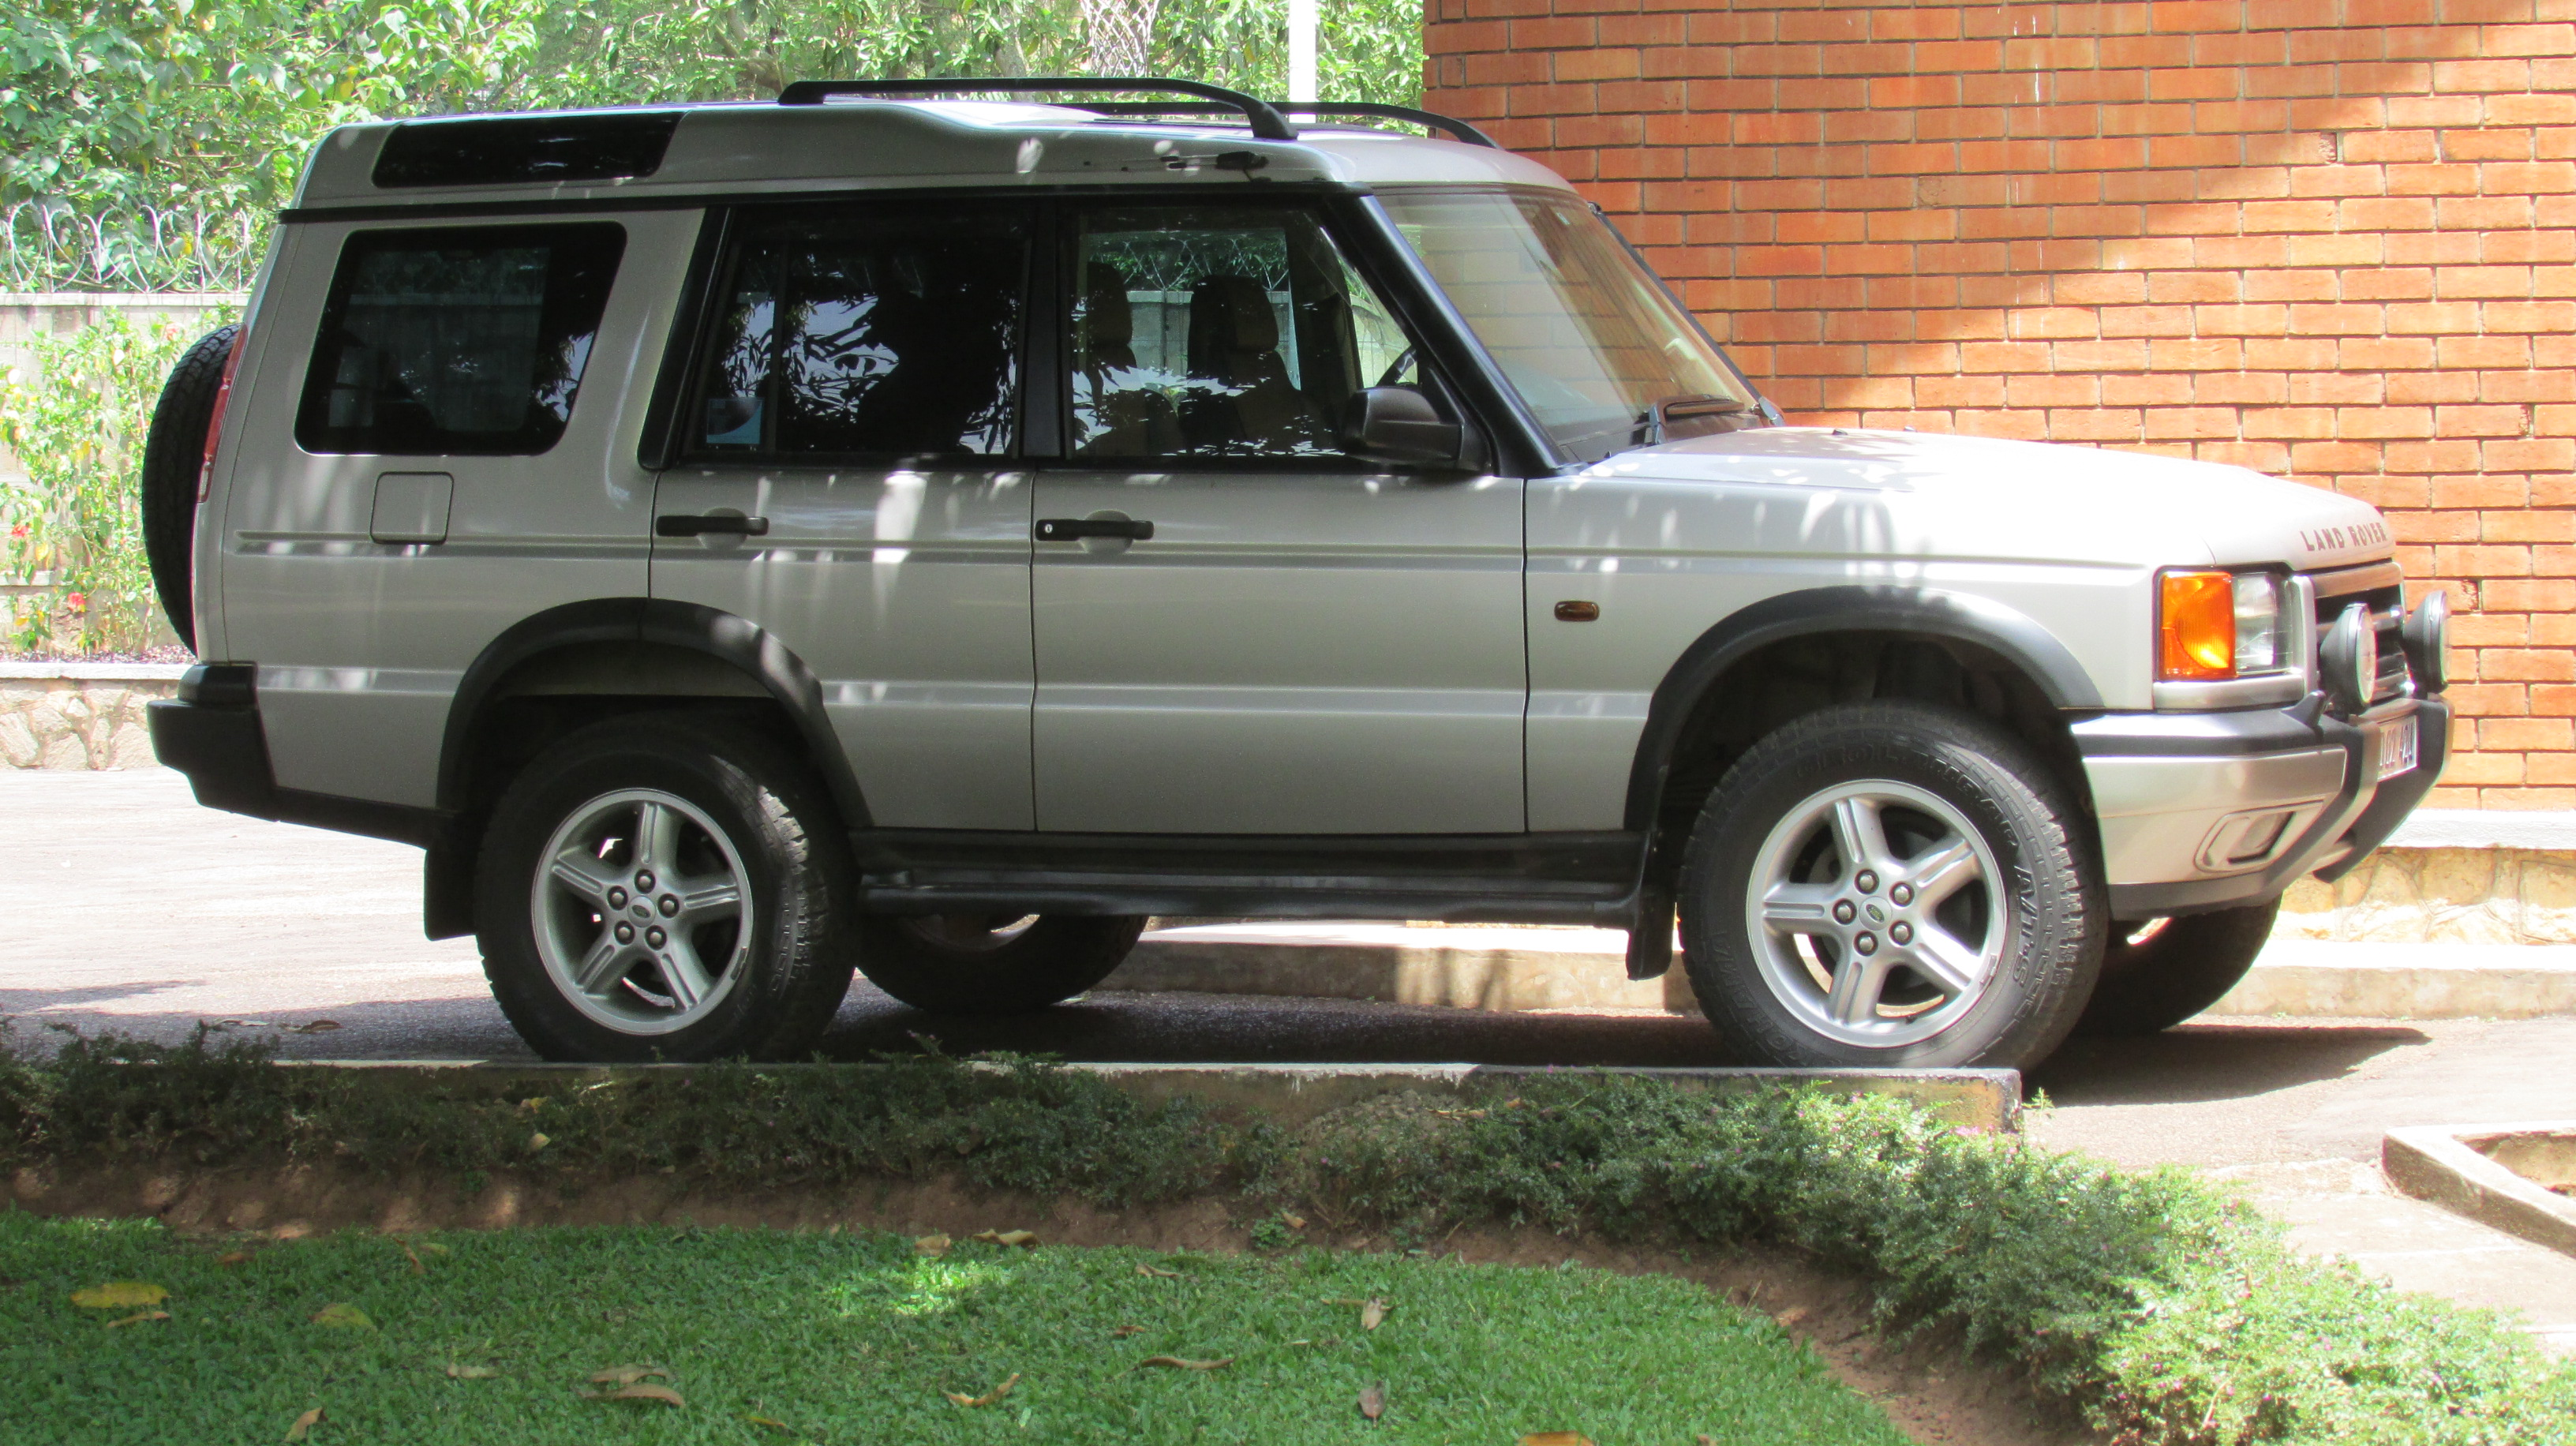 Garage Sale Rover 2000 Land Rover Discovery Series Ii Usd 8 500 Garage Sale Kampala